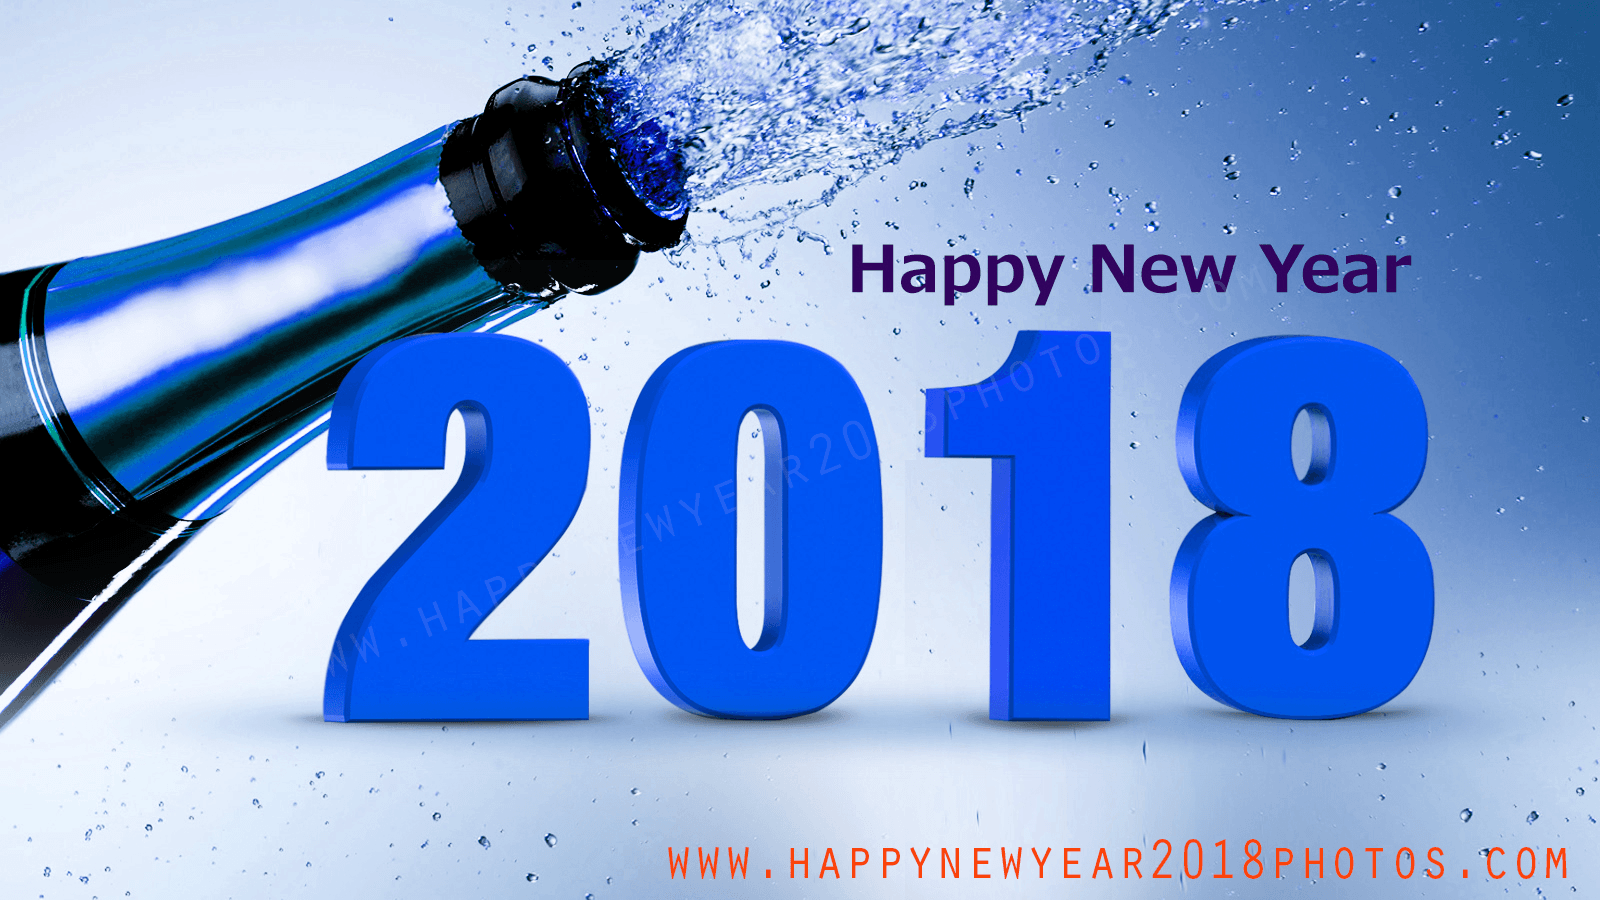 free downloadhappy new year 2018 top pictures images photos hd